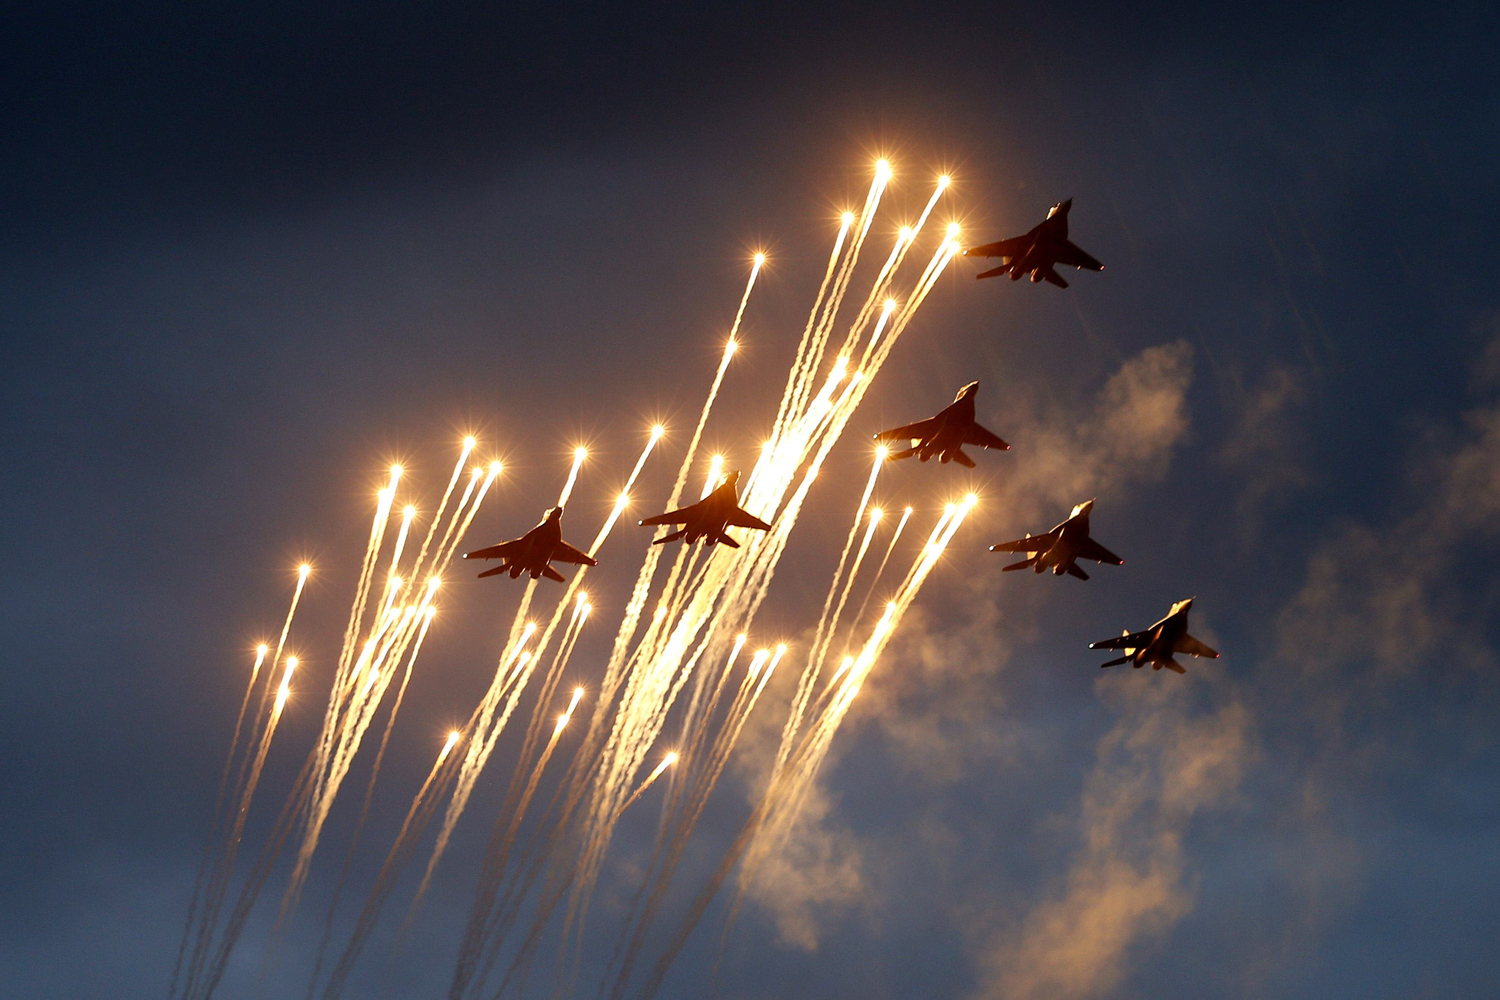 Jun. 26, 2014. Belarussian MiG-29 jet fighters take part in a rehearsal for a military parade in Minsk.